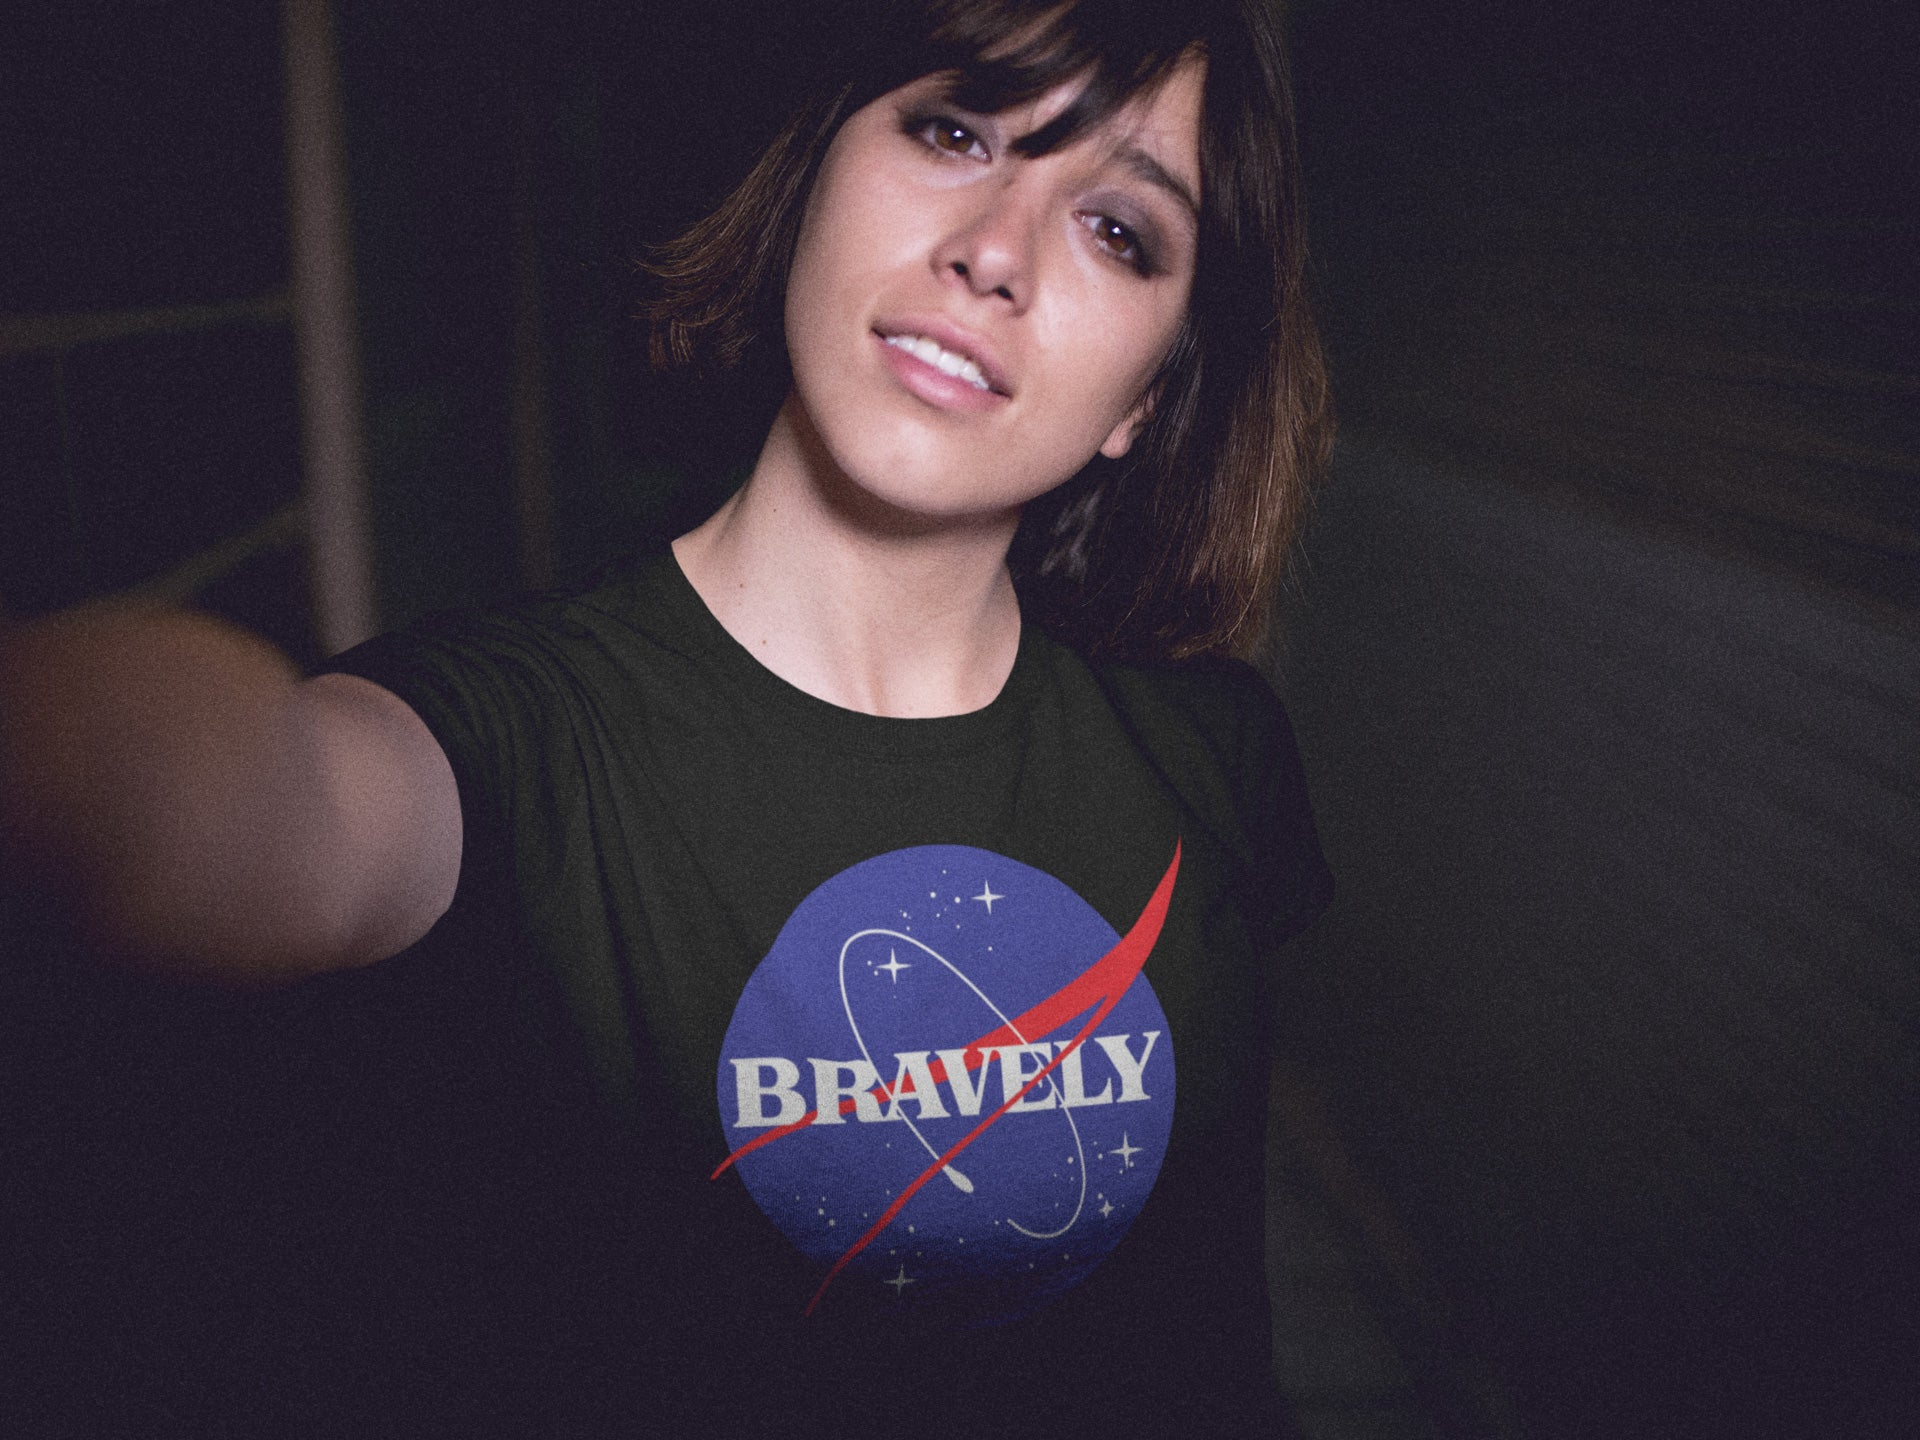 NASA x Bravely Meatball Logo Mashup T-Shirt